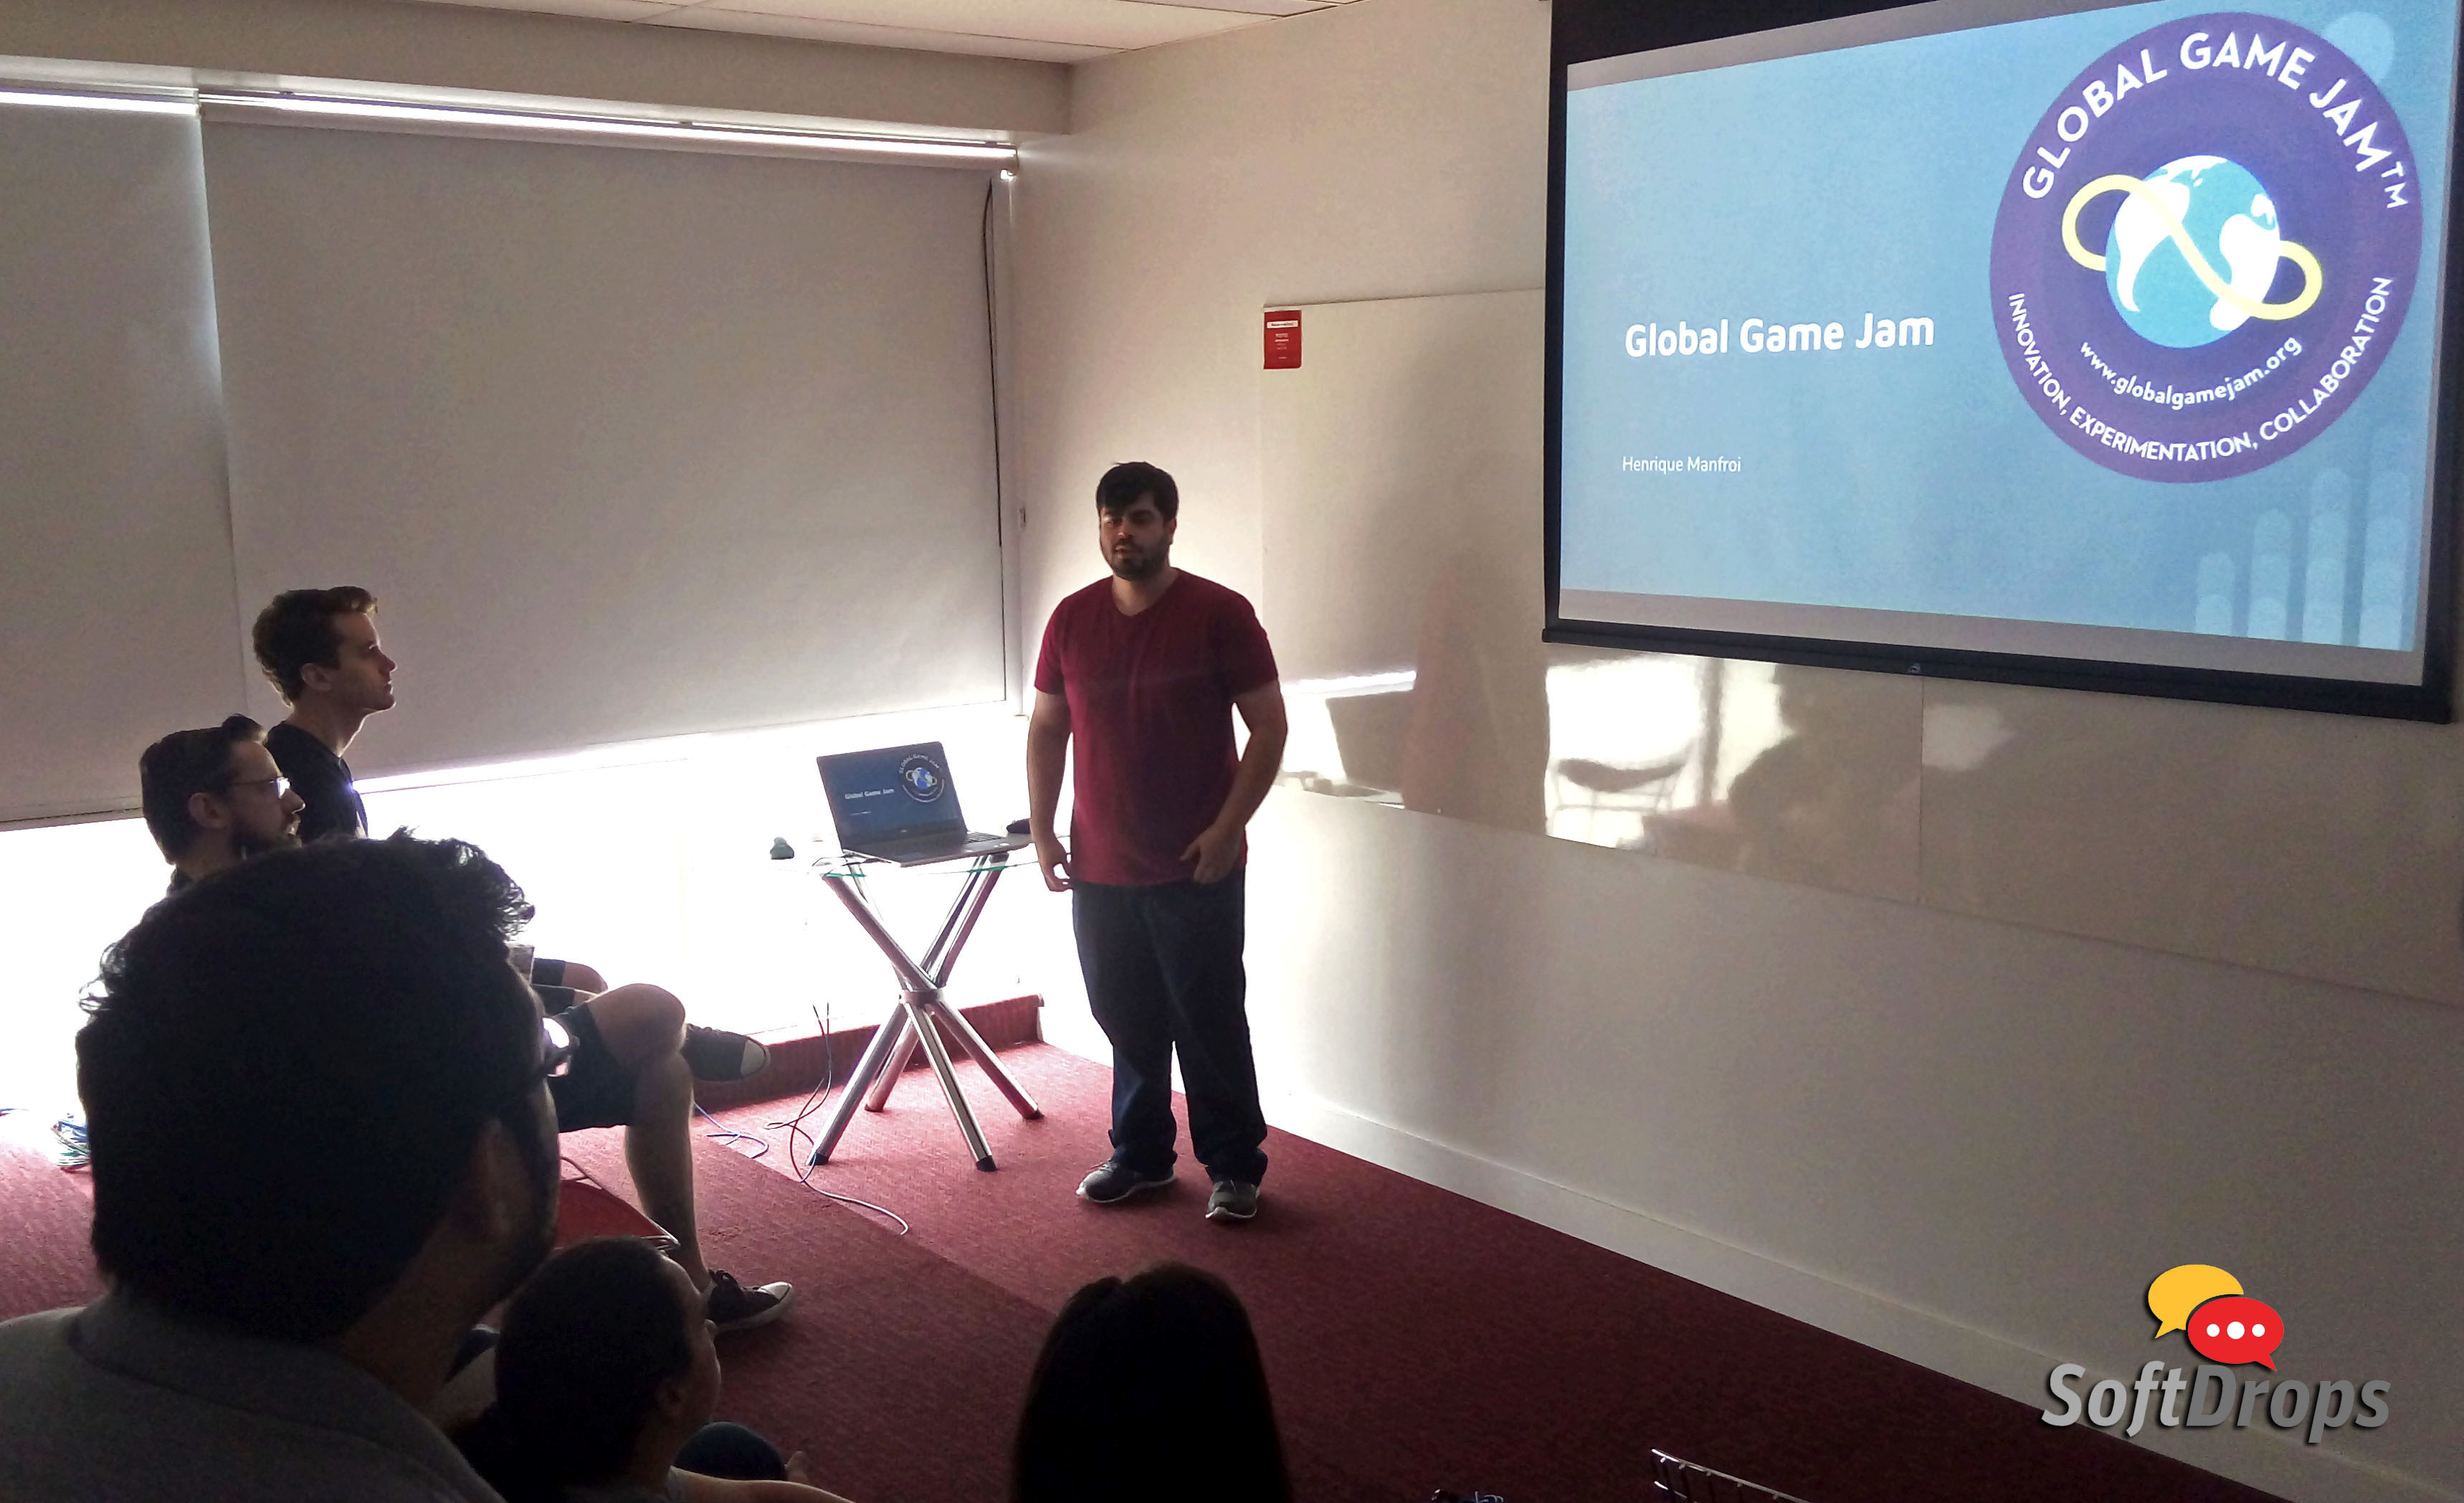 SoftDrops sobre o evento Global Game Jam (GGJ)